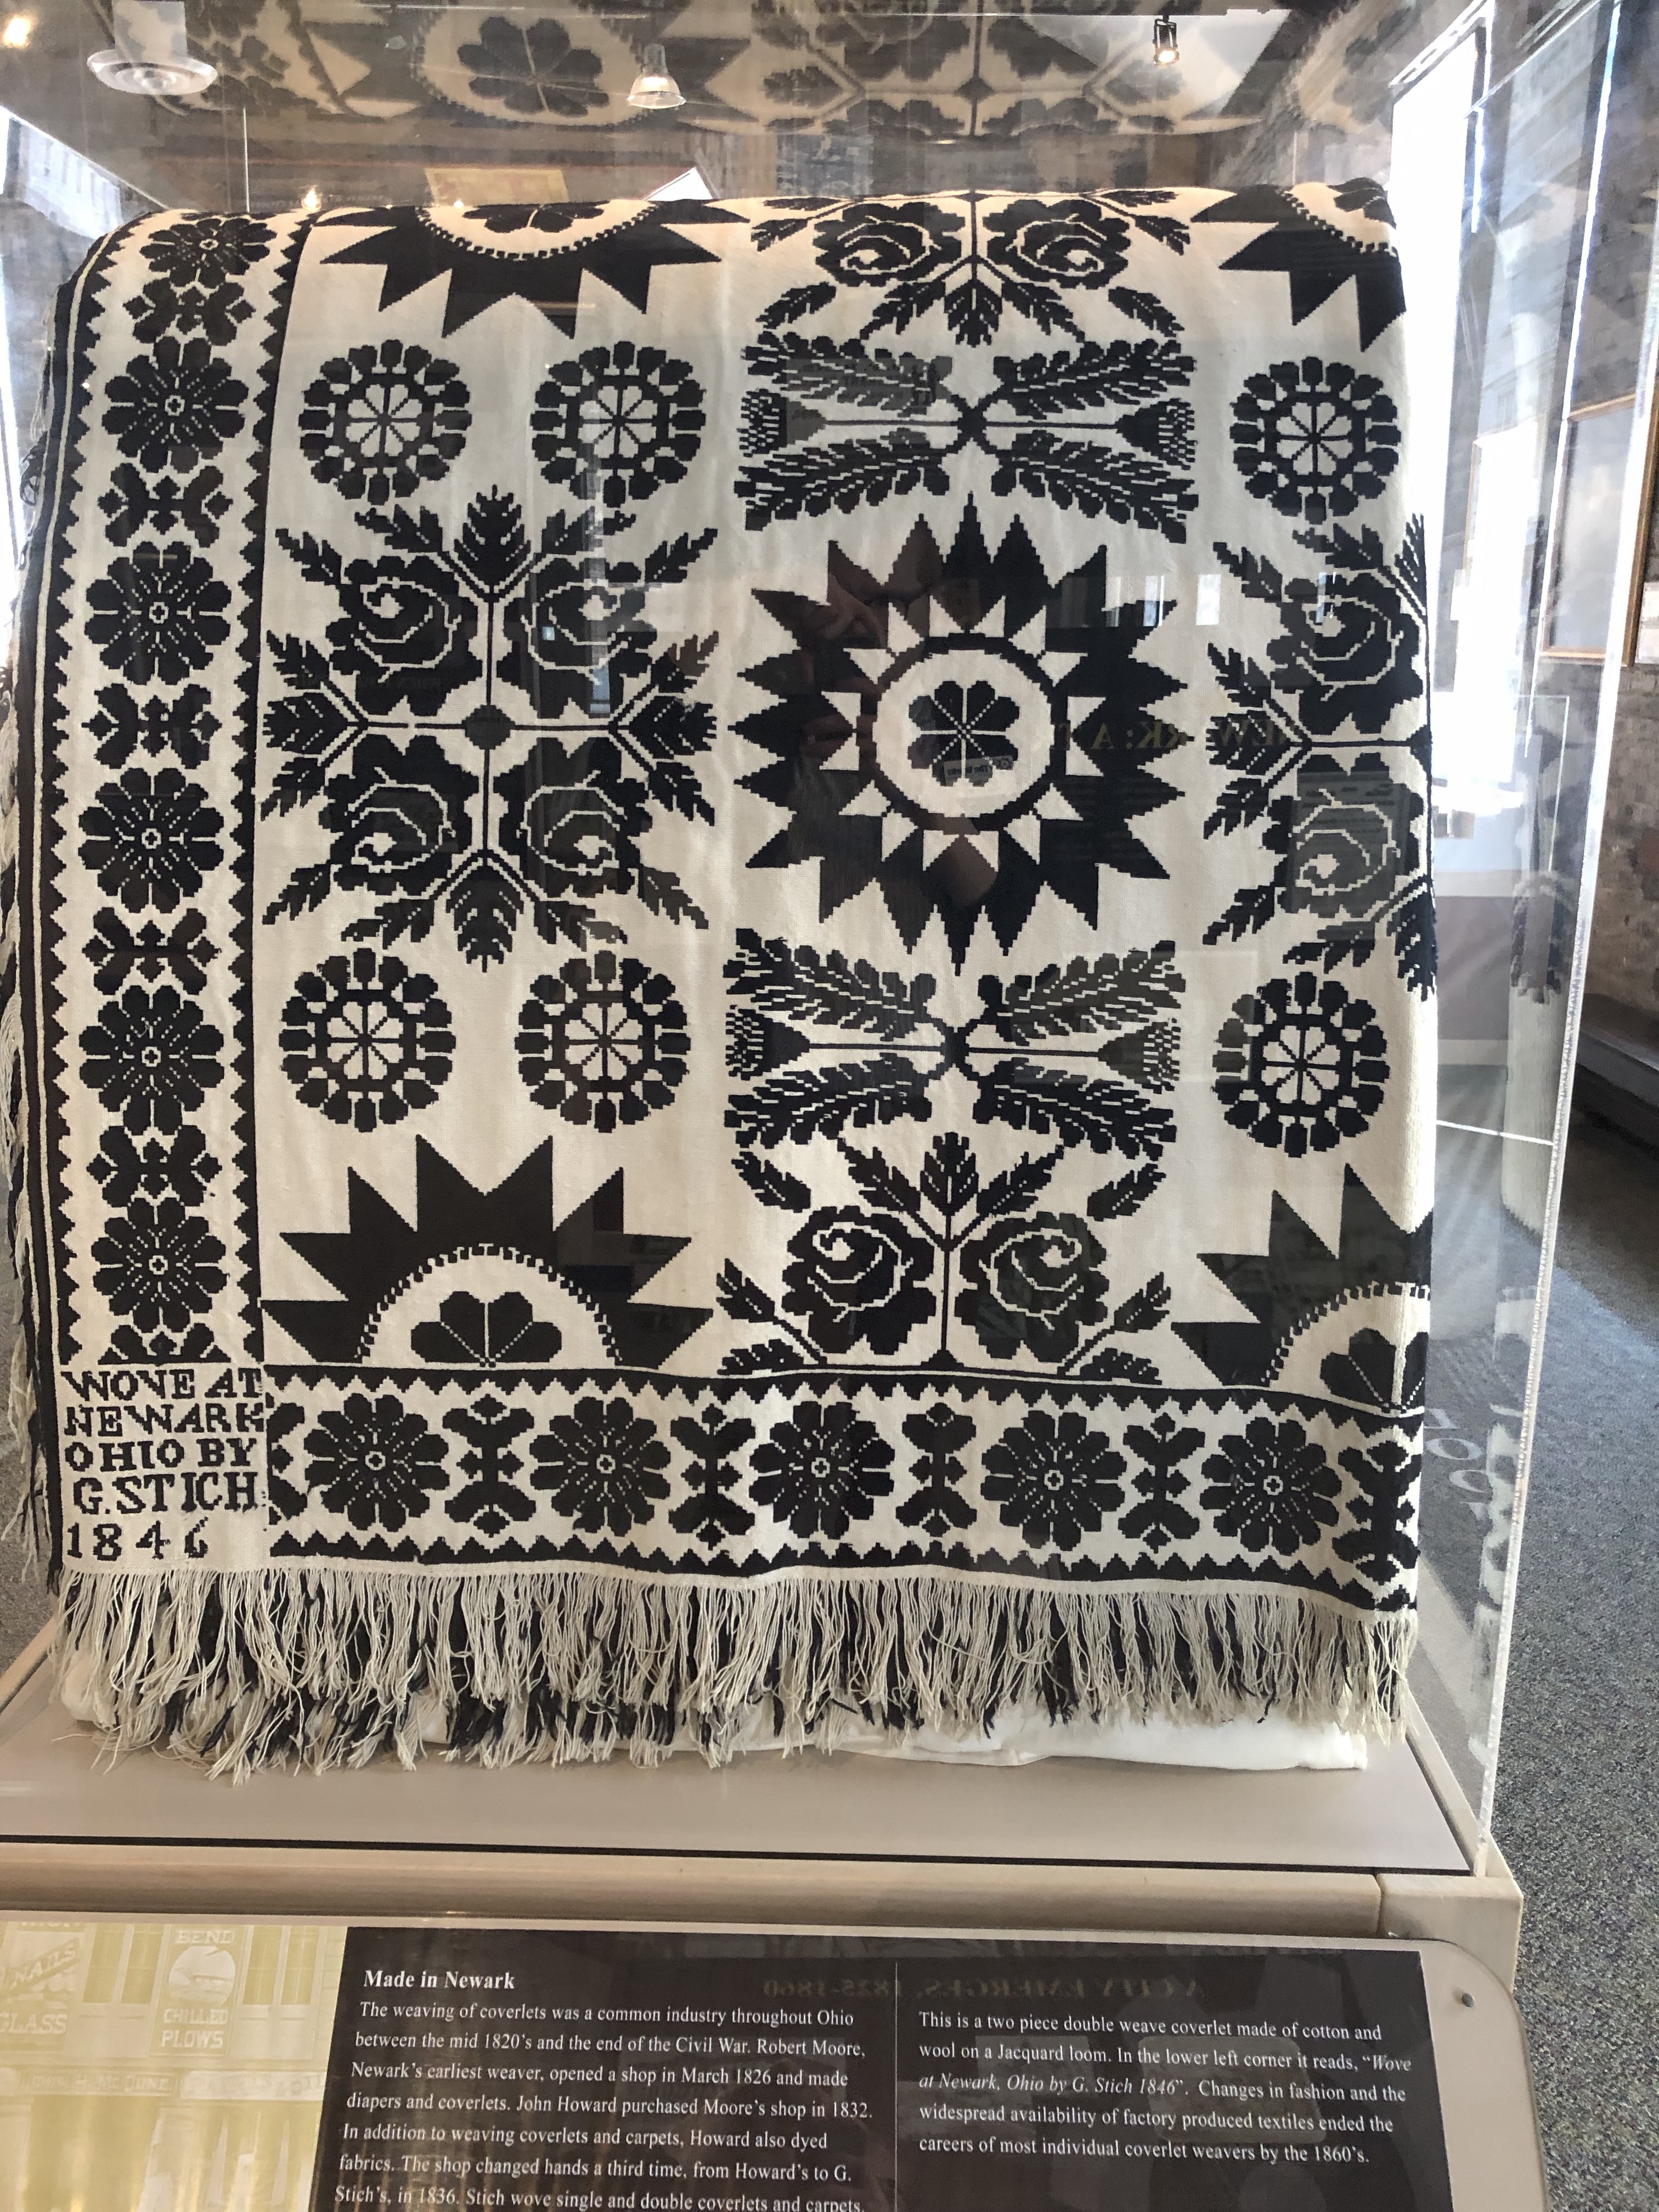 "This is a two-piece double weave coverlet made of cotton and wool on a Jacquard loom. In the lower left corner it reads, ""Wove at Newark, Ohio by G. Stich 1846."""